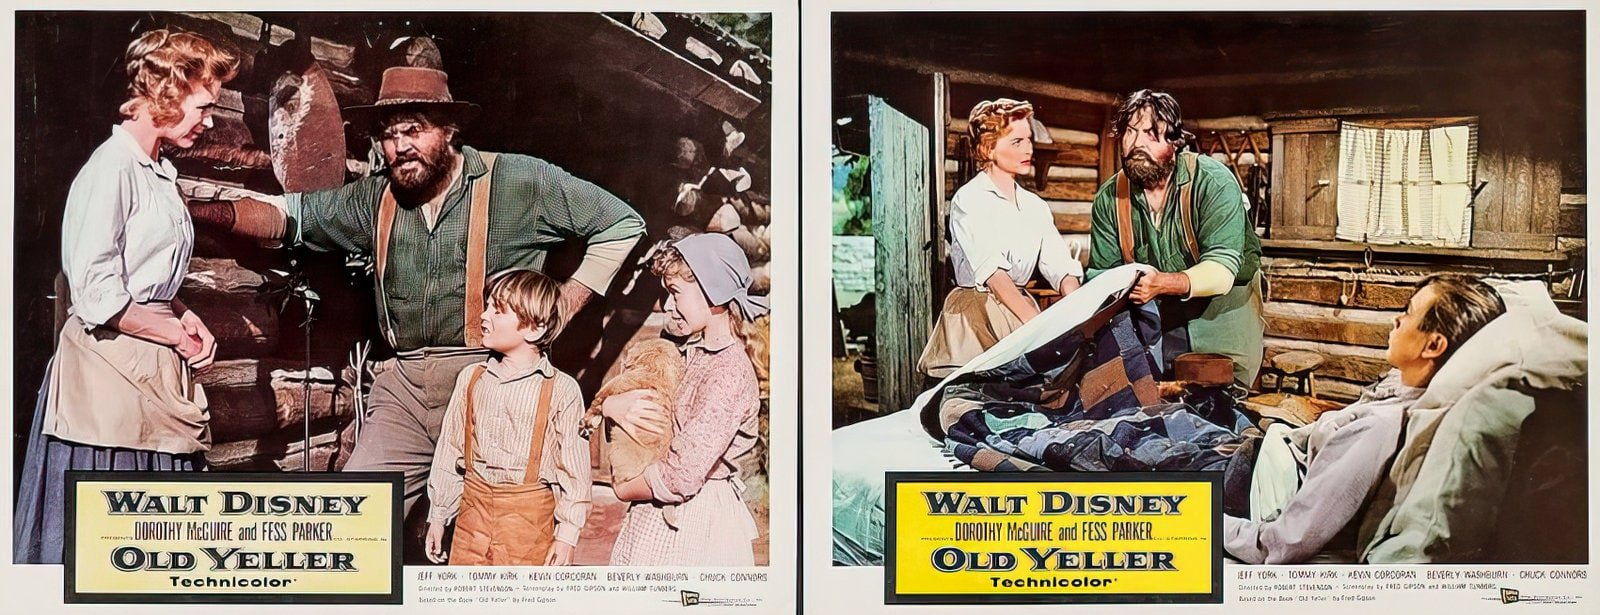 Vintage Old Yeller movie scenes from the 1950s (2)